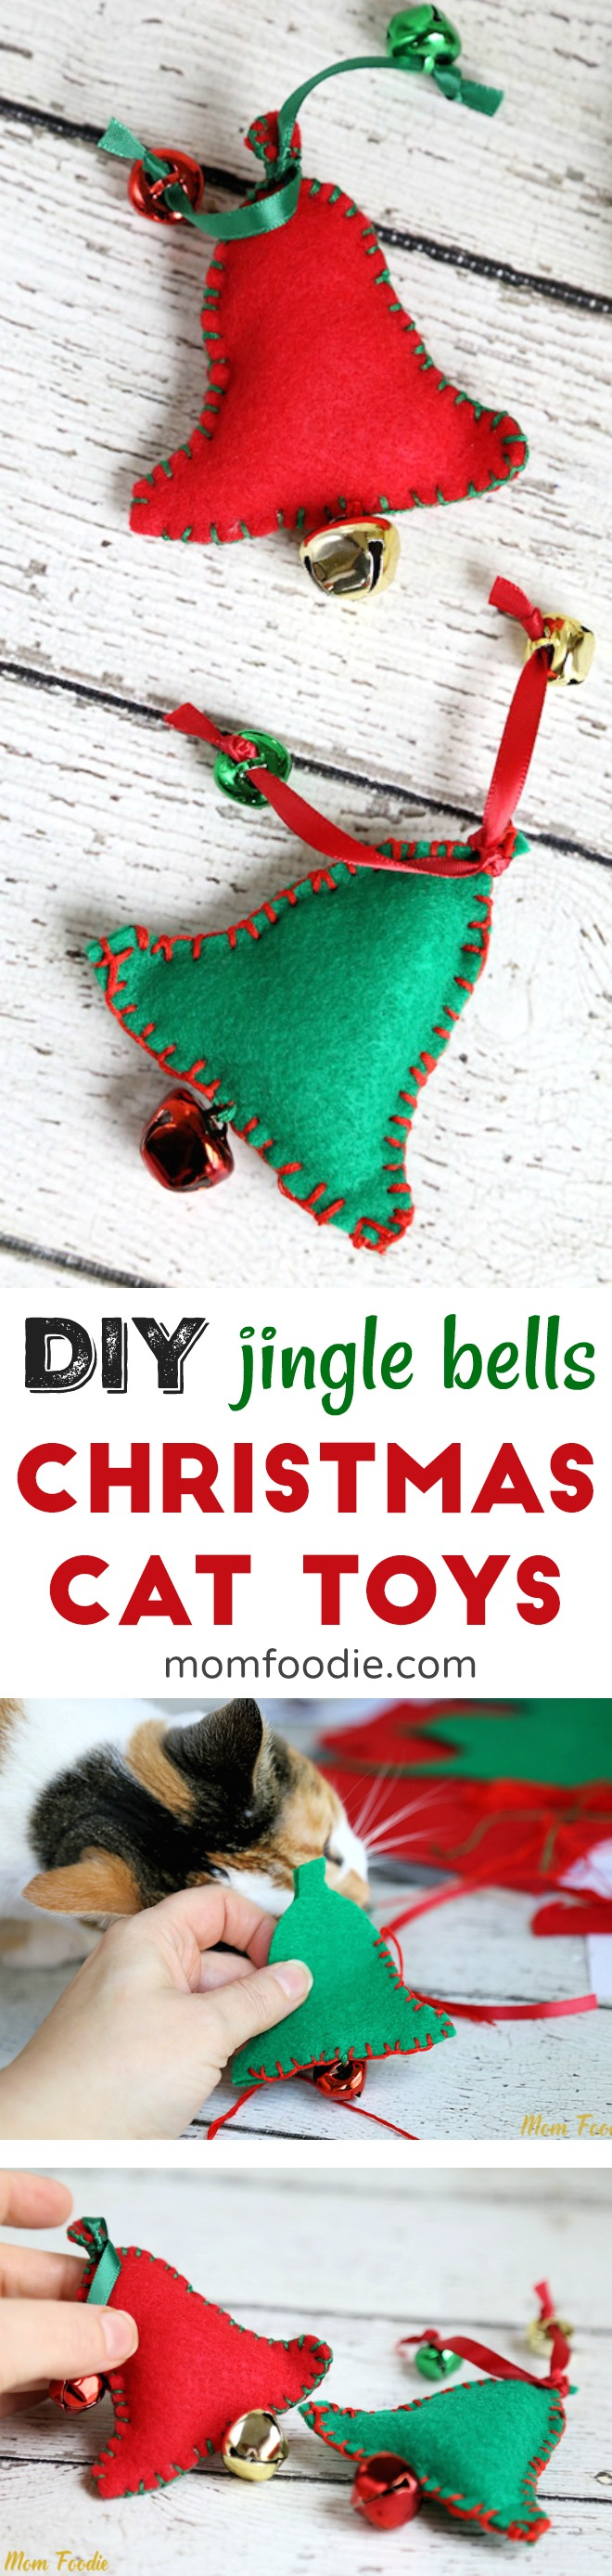 DIY Cat Toys - Homemade cat toys for Christmas in a bell shape with jingle bells.